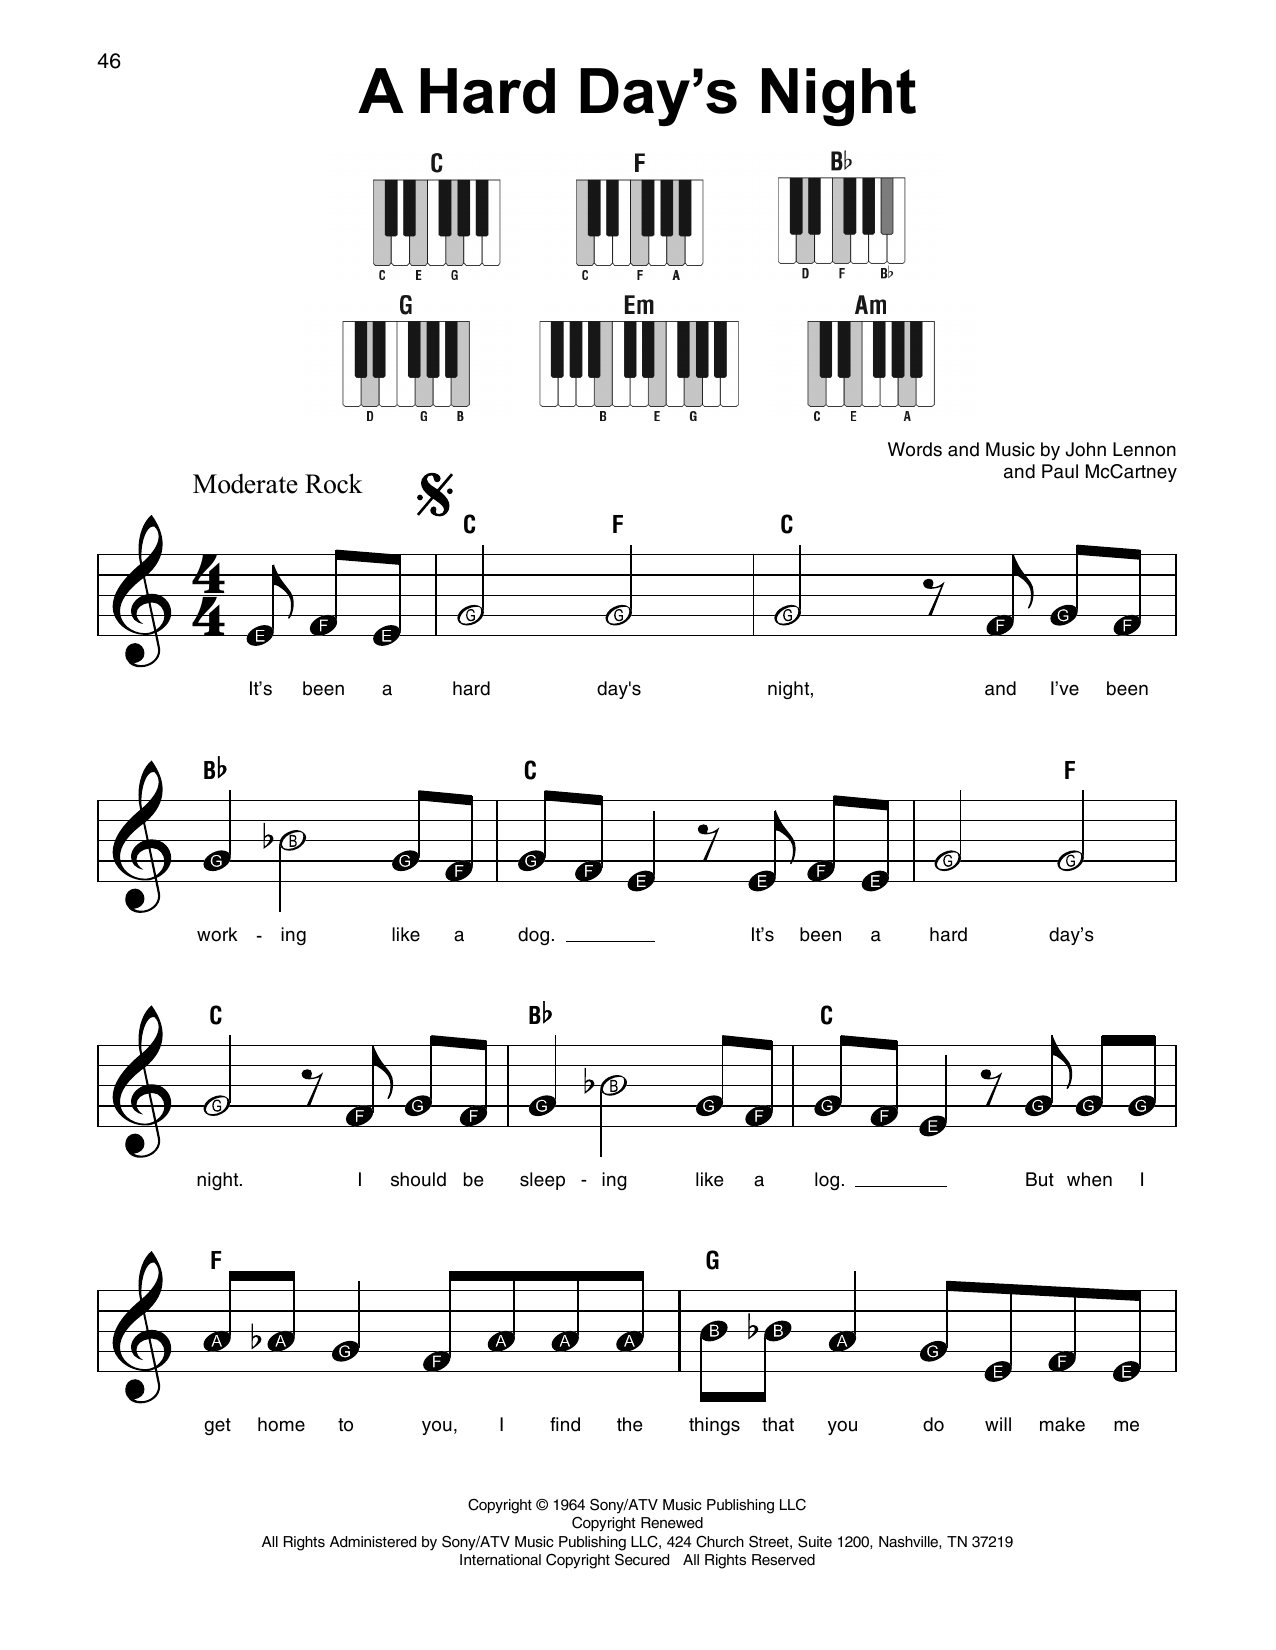 A Hard Day's Night by The Beatles Piano, Vocal & Guitar (Right-Hand Melody)  Digital Sheet Music